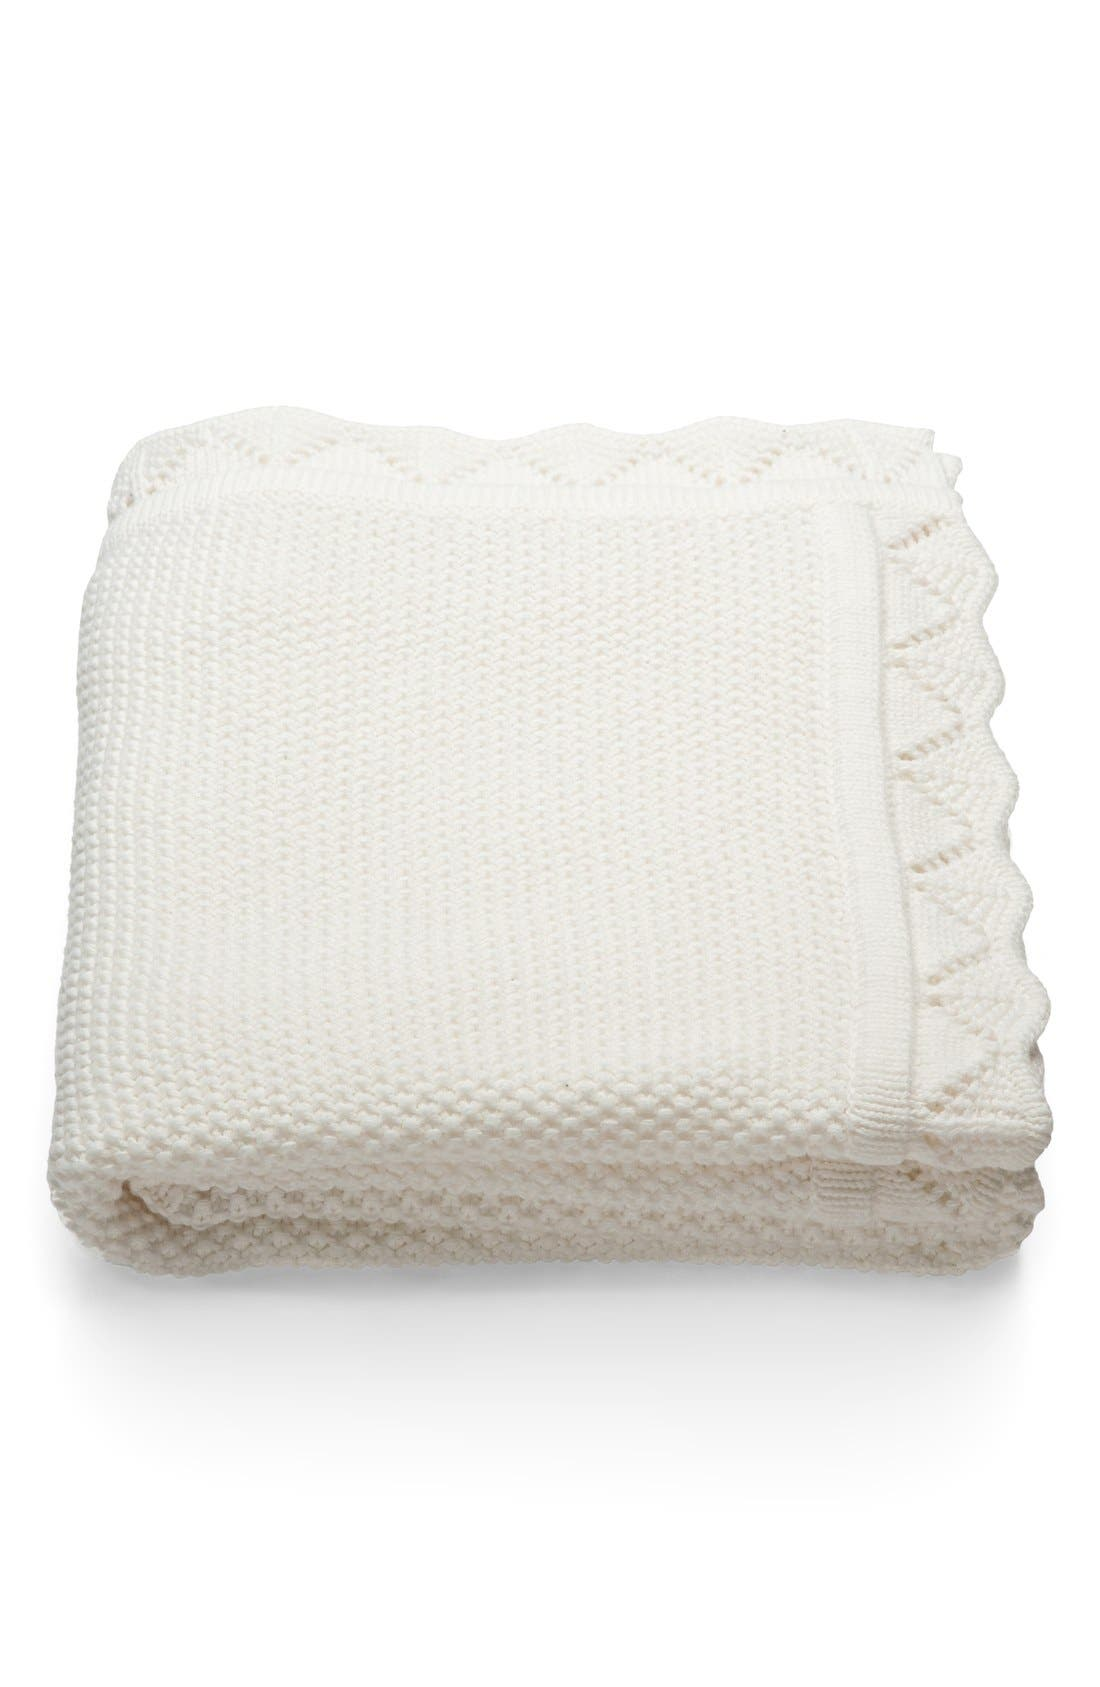 'Classic' Baby Blanket,                         Main,                         color, WHITE